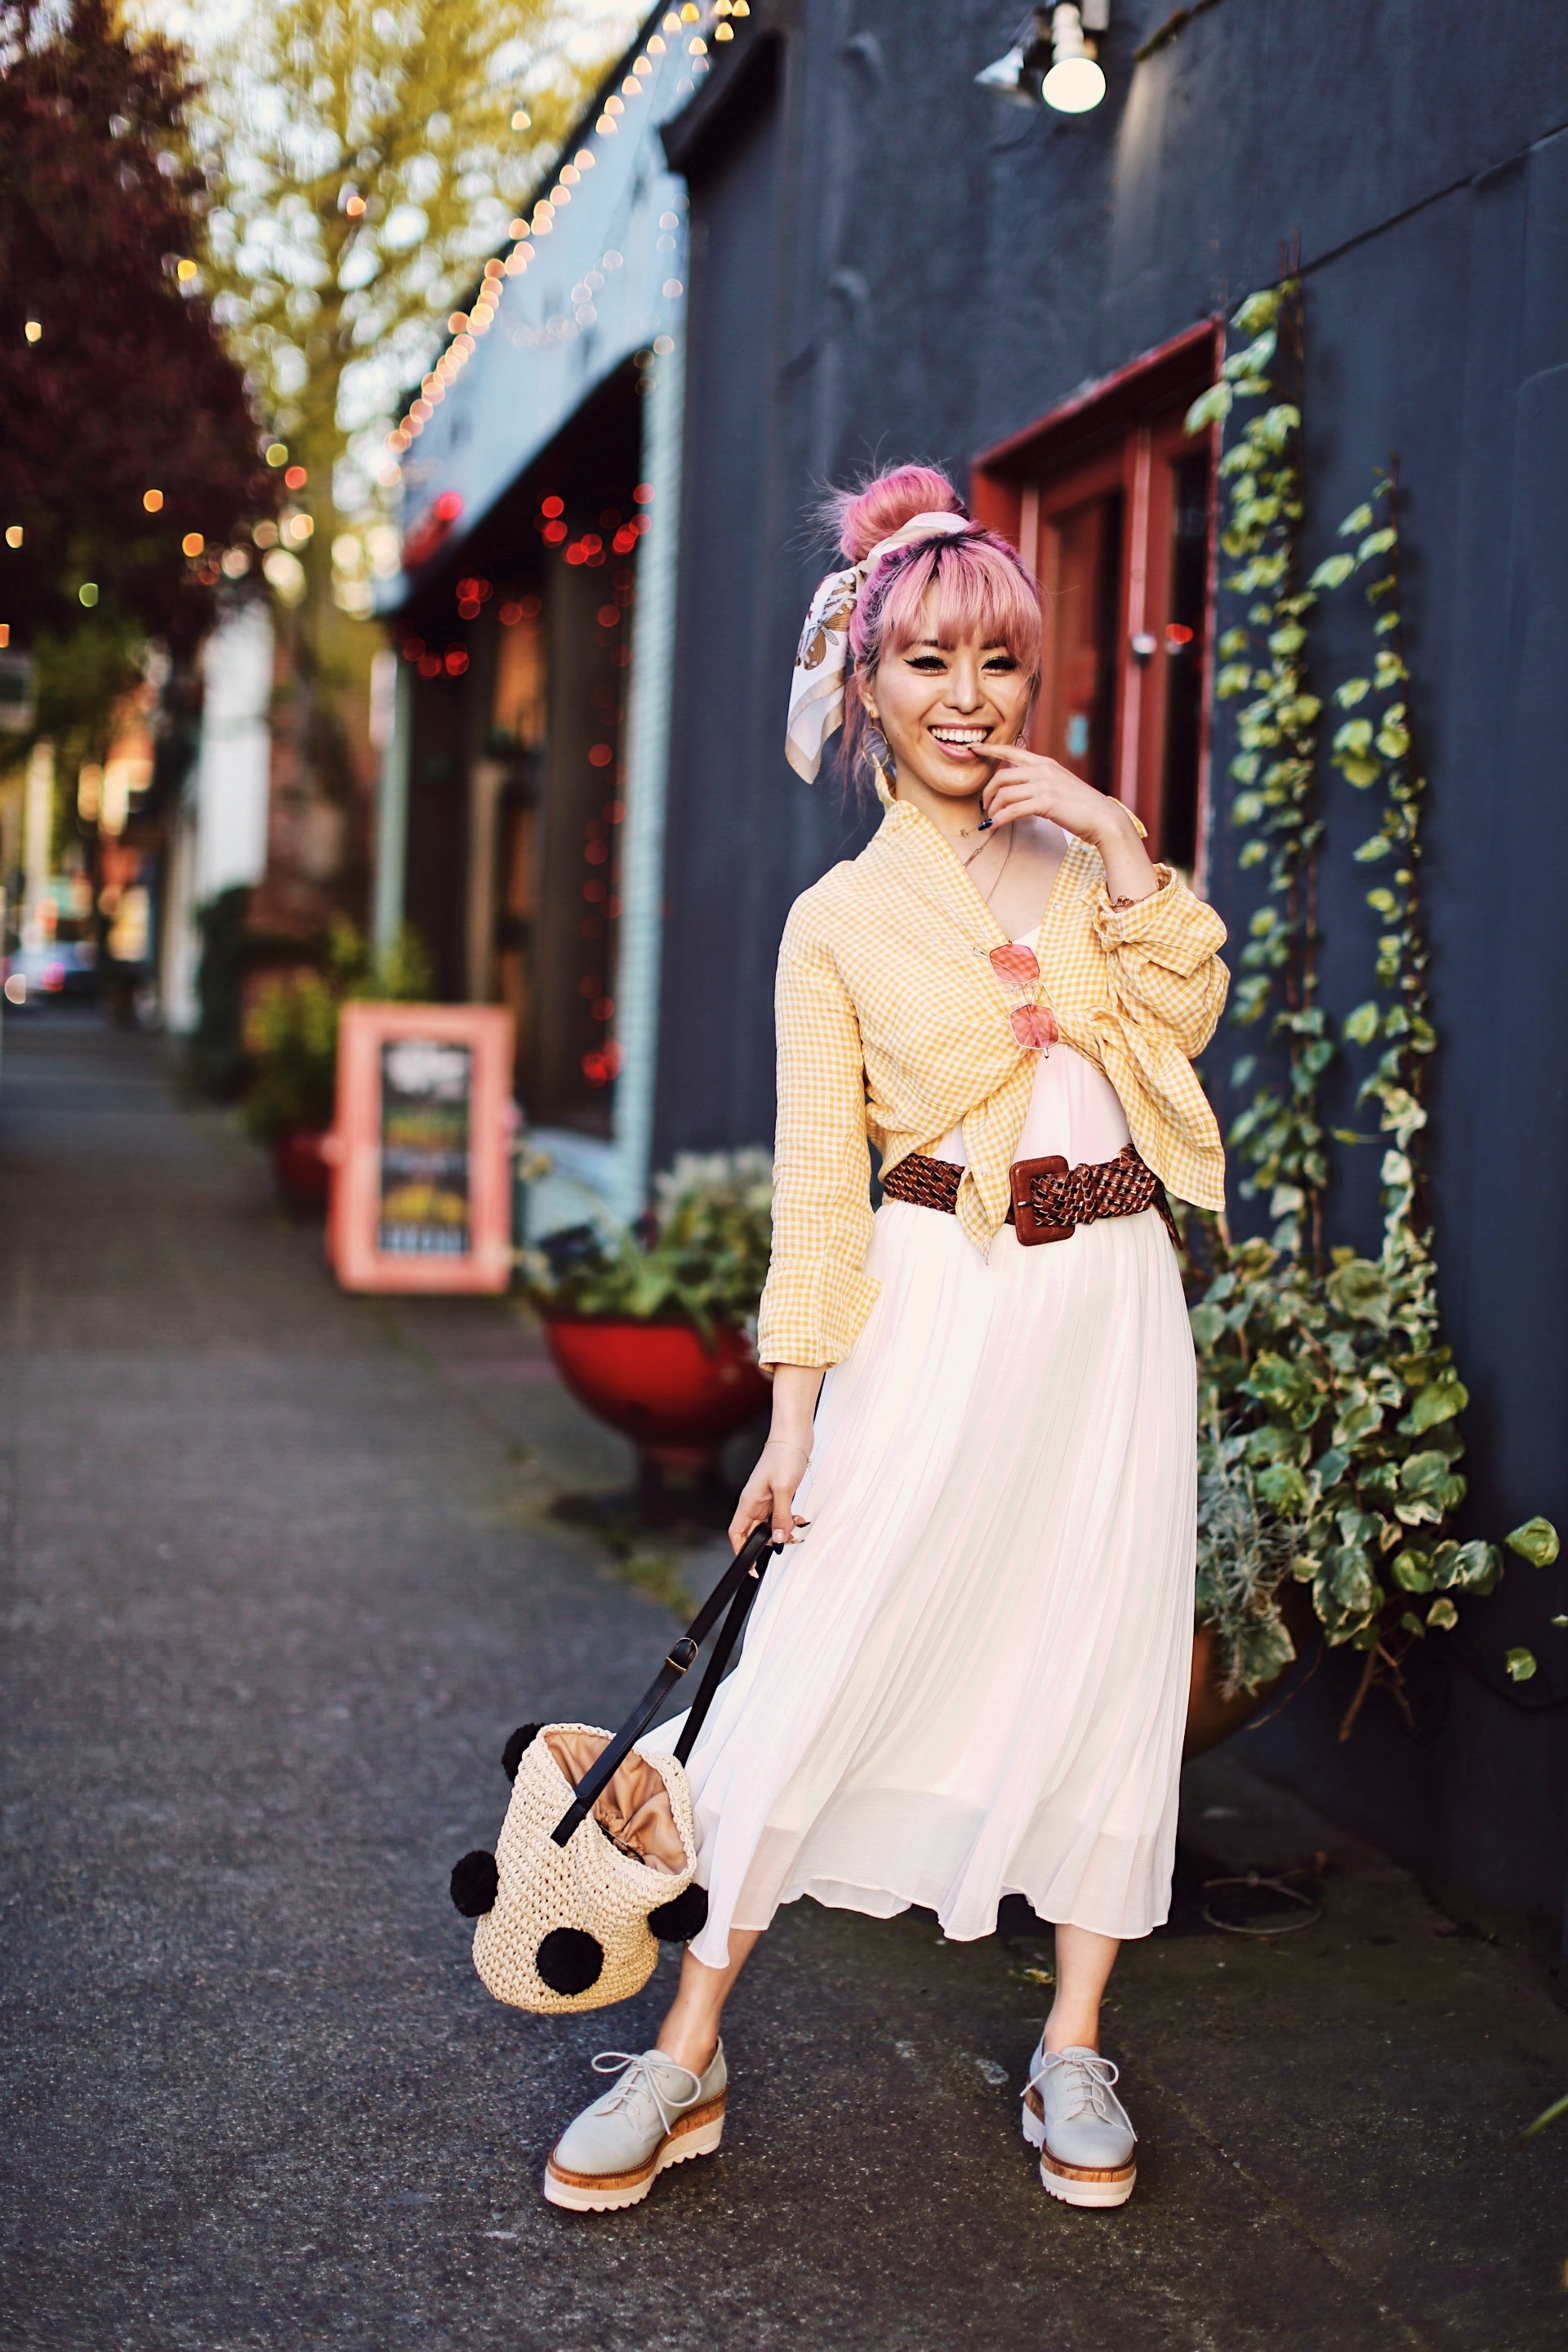 Uniqlo yellow Linen gingham shirt-Uniqlo White pleated chiffon midi skirt-Uniqlo Airism brat-pink tinted sunglasses ZERO UV-She in Pom pom Straw bucket bag-Vintage scarf bun hair style-Steve Madden Belt-Jane and the shoe denim oxford platforms-Aika's Love Closet-seattle fashion style blogger-Japanese-pink hair-smiling-spring fashion 17